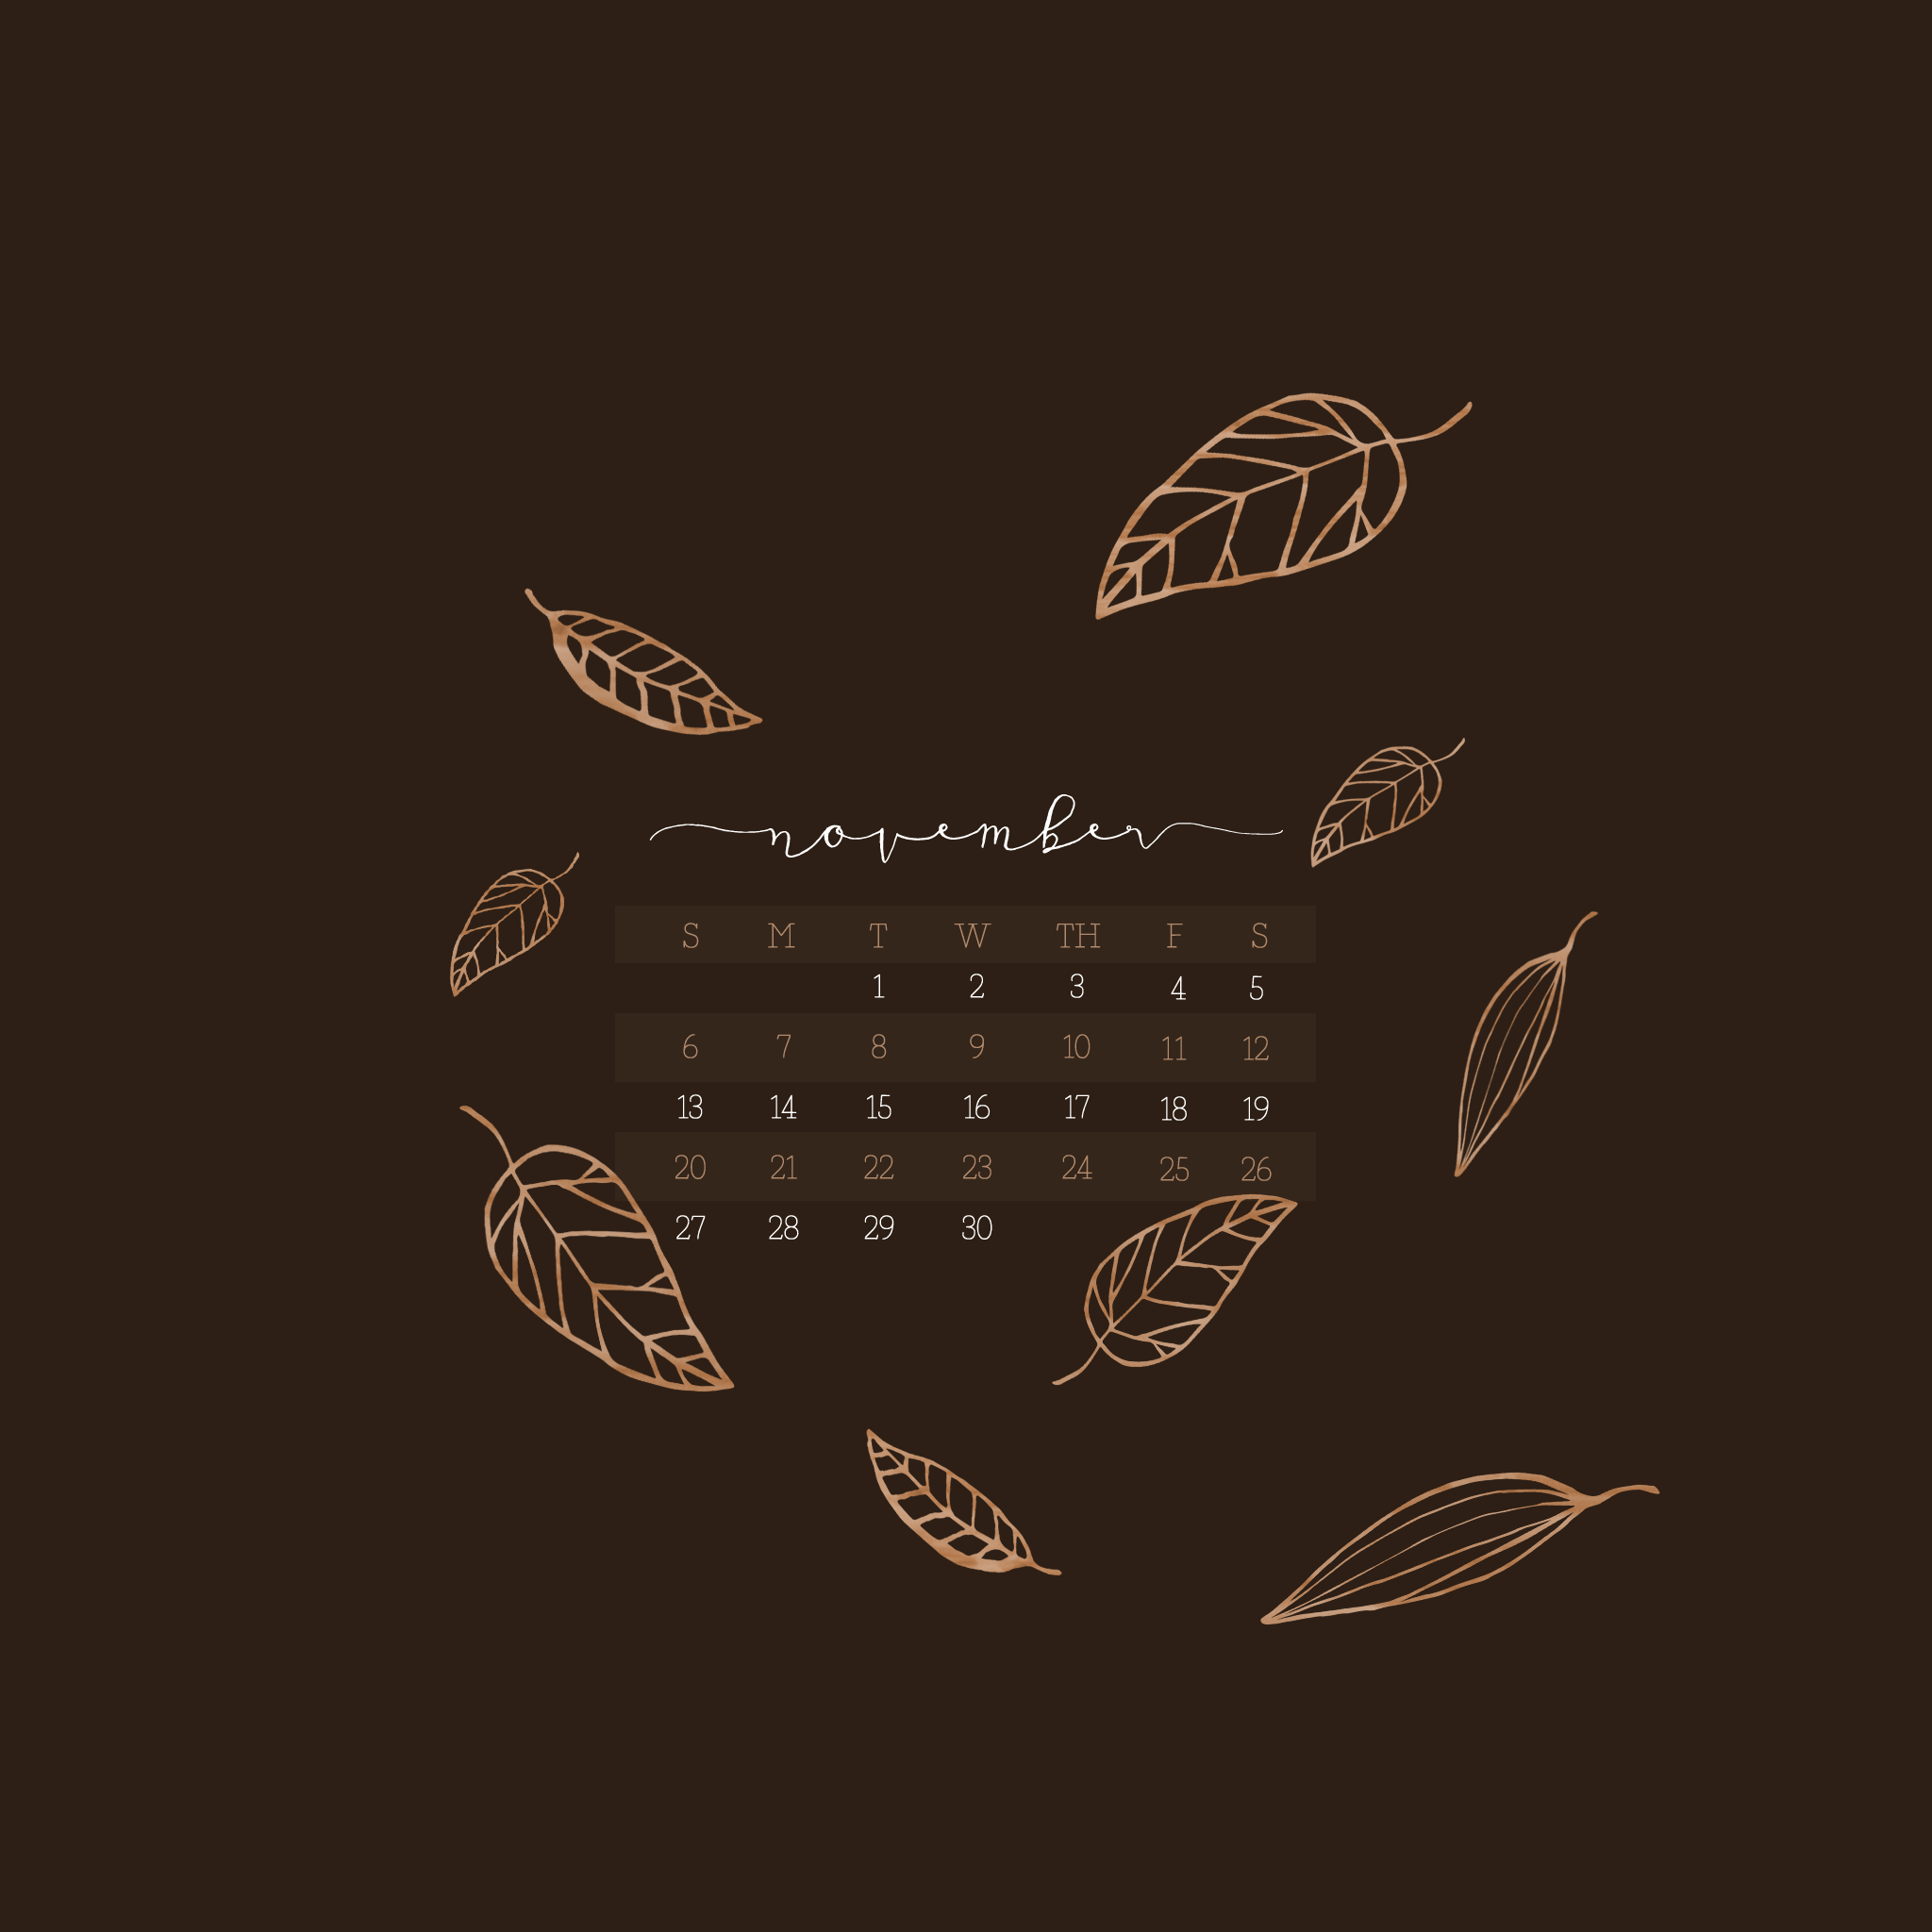 November Calendar Wallpaper For Iphone : November calendar wallpaper desktop mobile